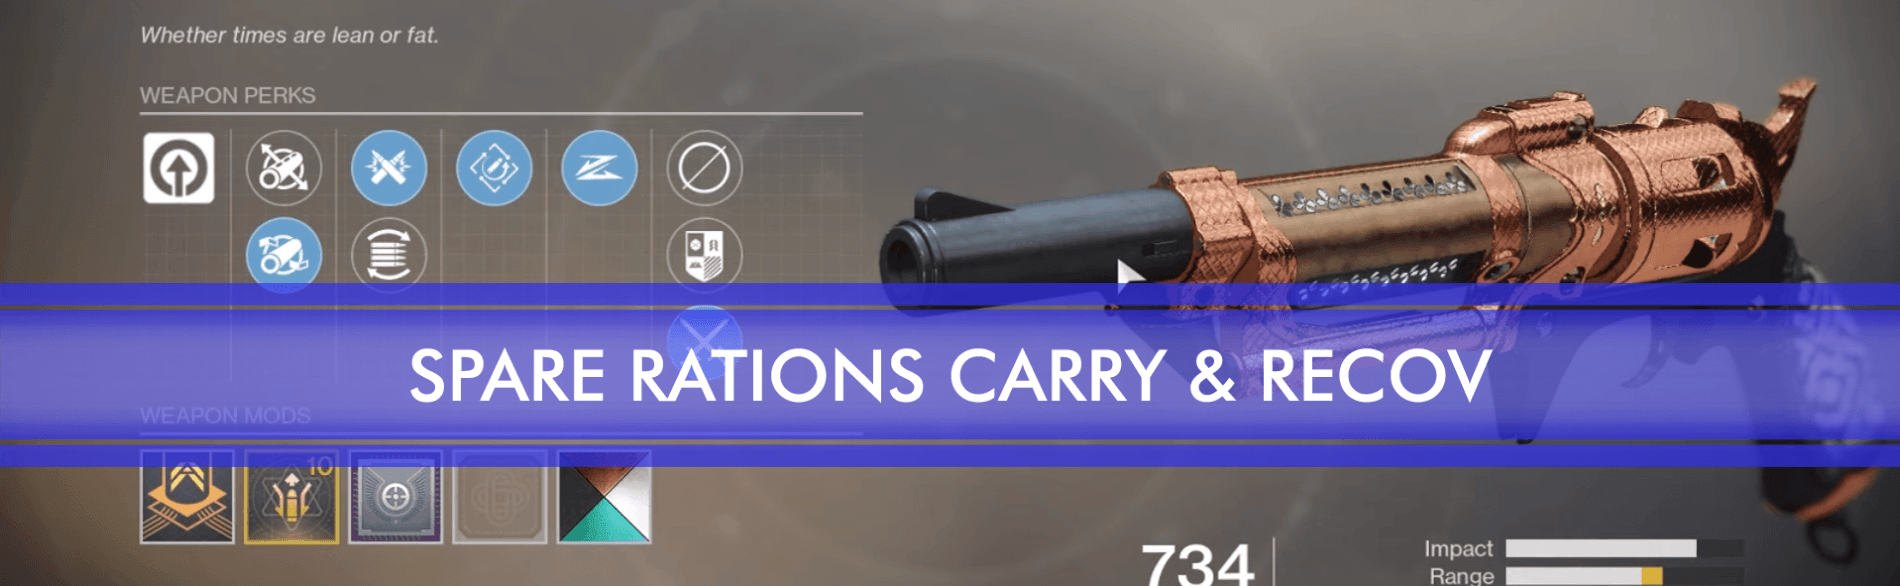 spare rations post